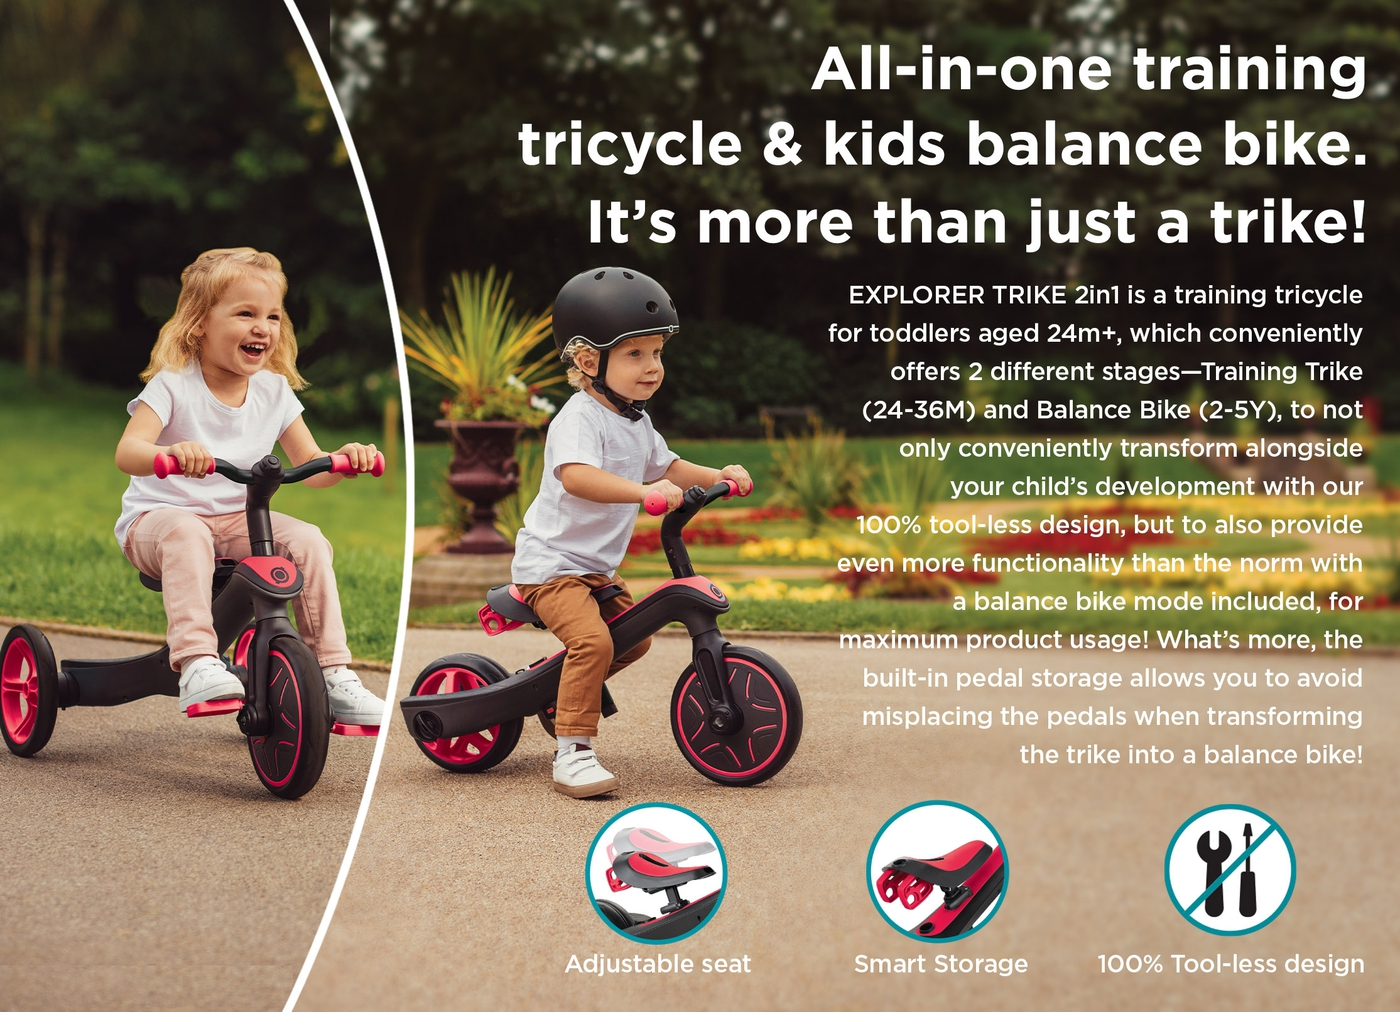 All-in-one training tricycle & kids balance bike. It's more than just a trike!